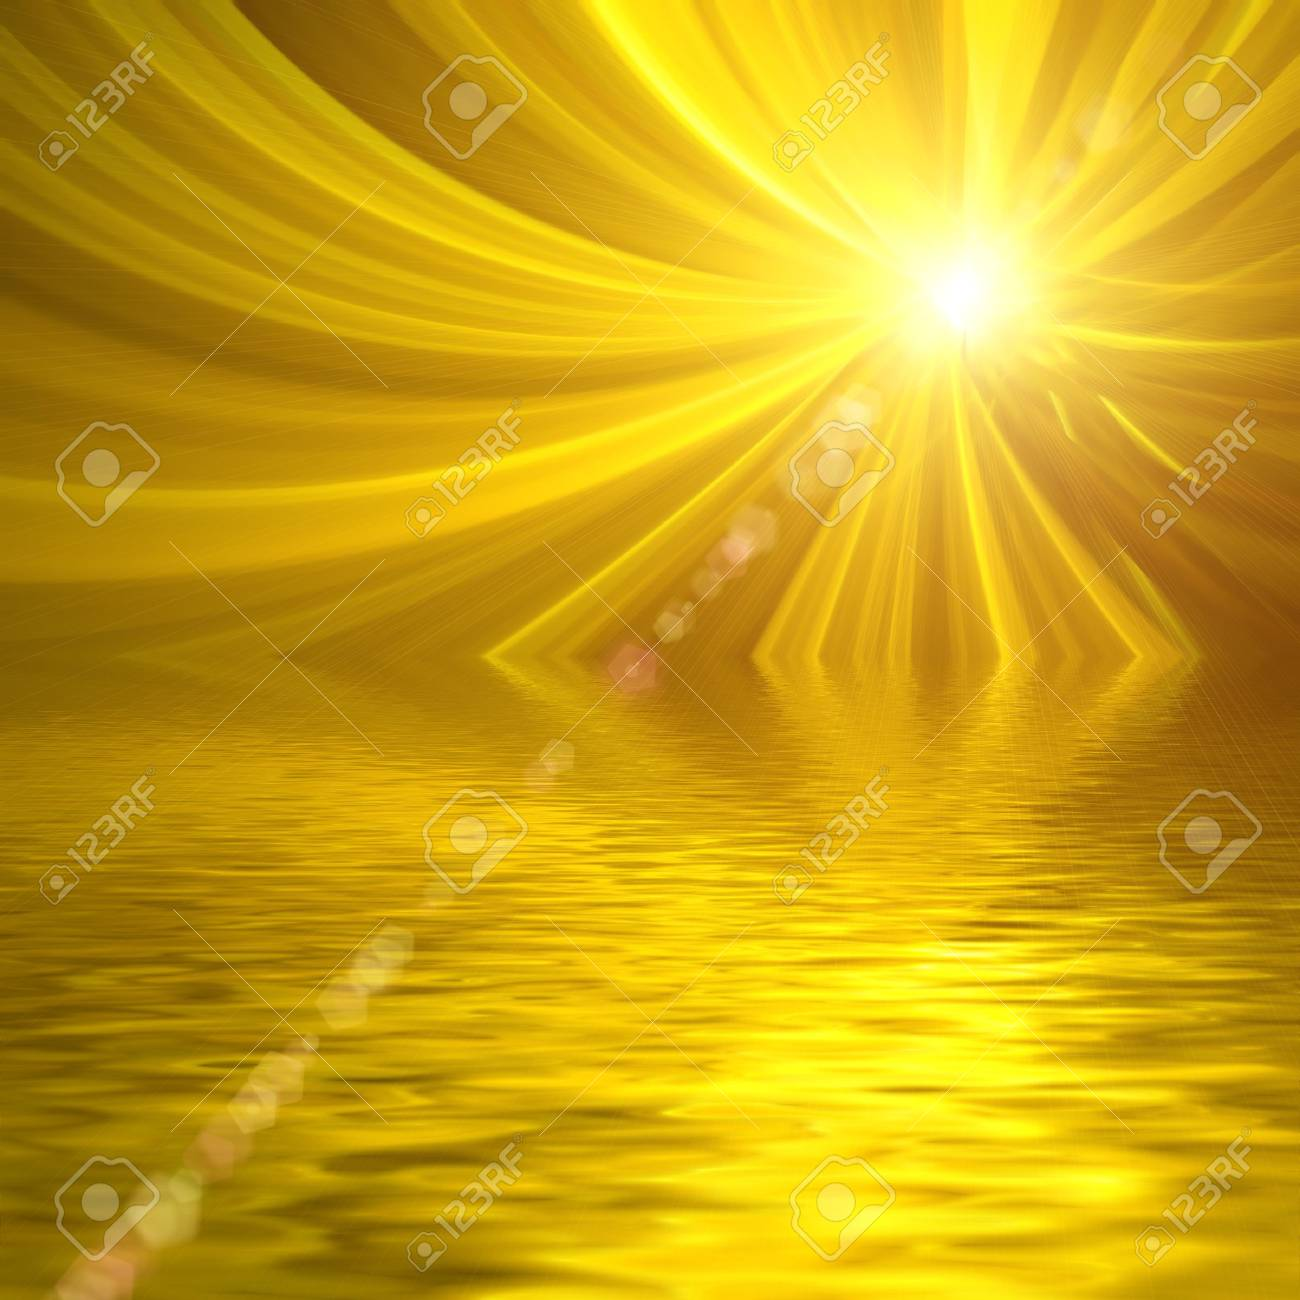 Abstract background. Yellow palette. Raster fractal graphics. Stock Photo - 4920495